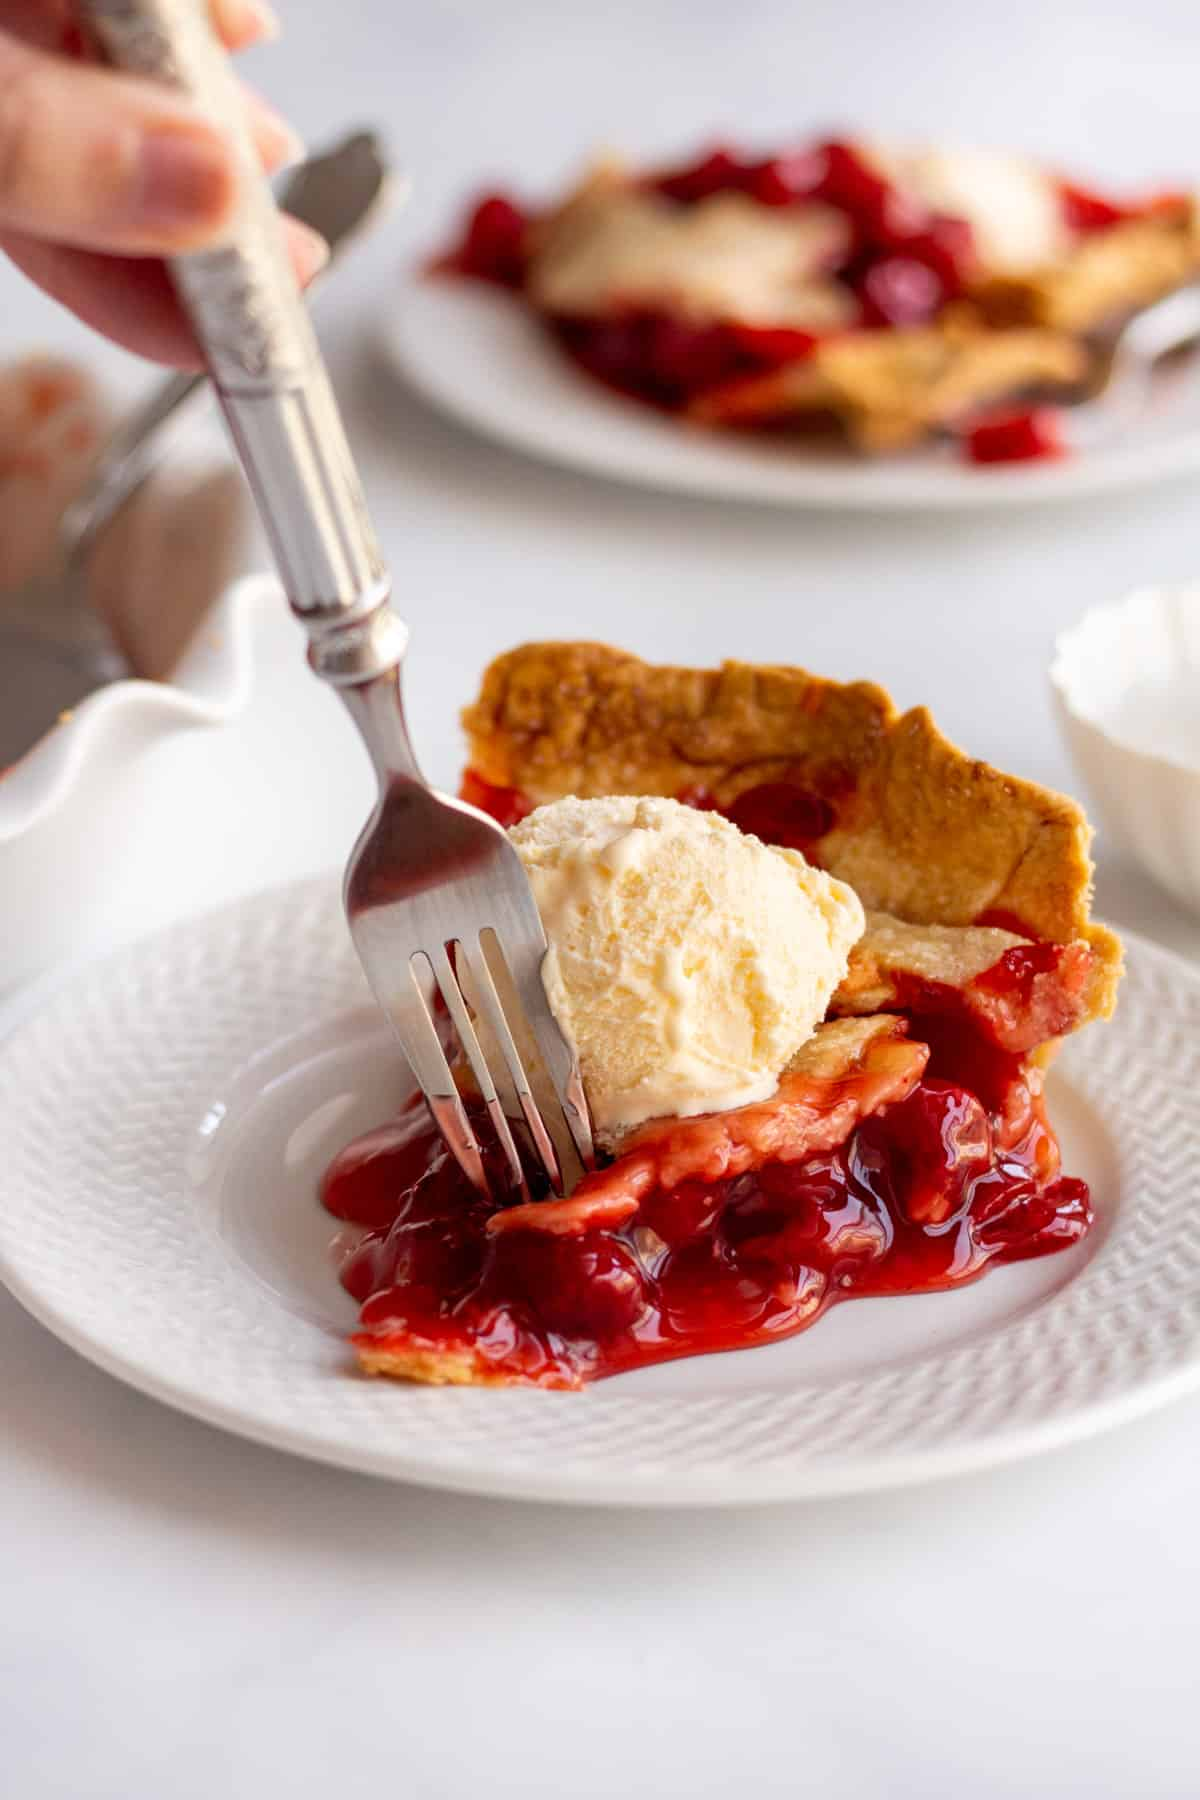 slice of cherry pie with a scoop of vanilla ice cream on top with a metal fork digging in